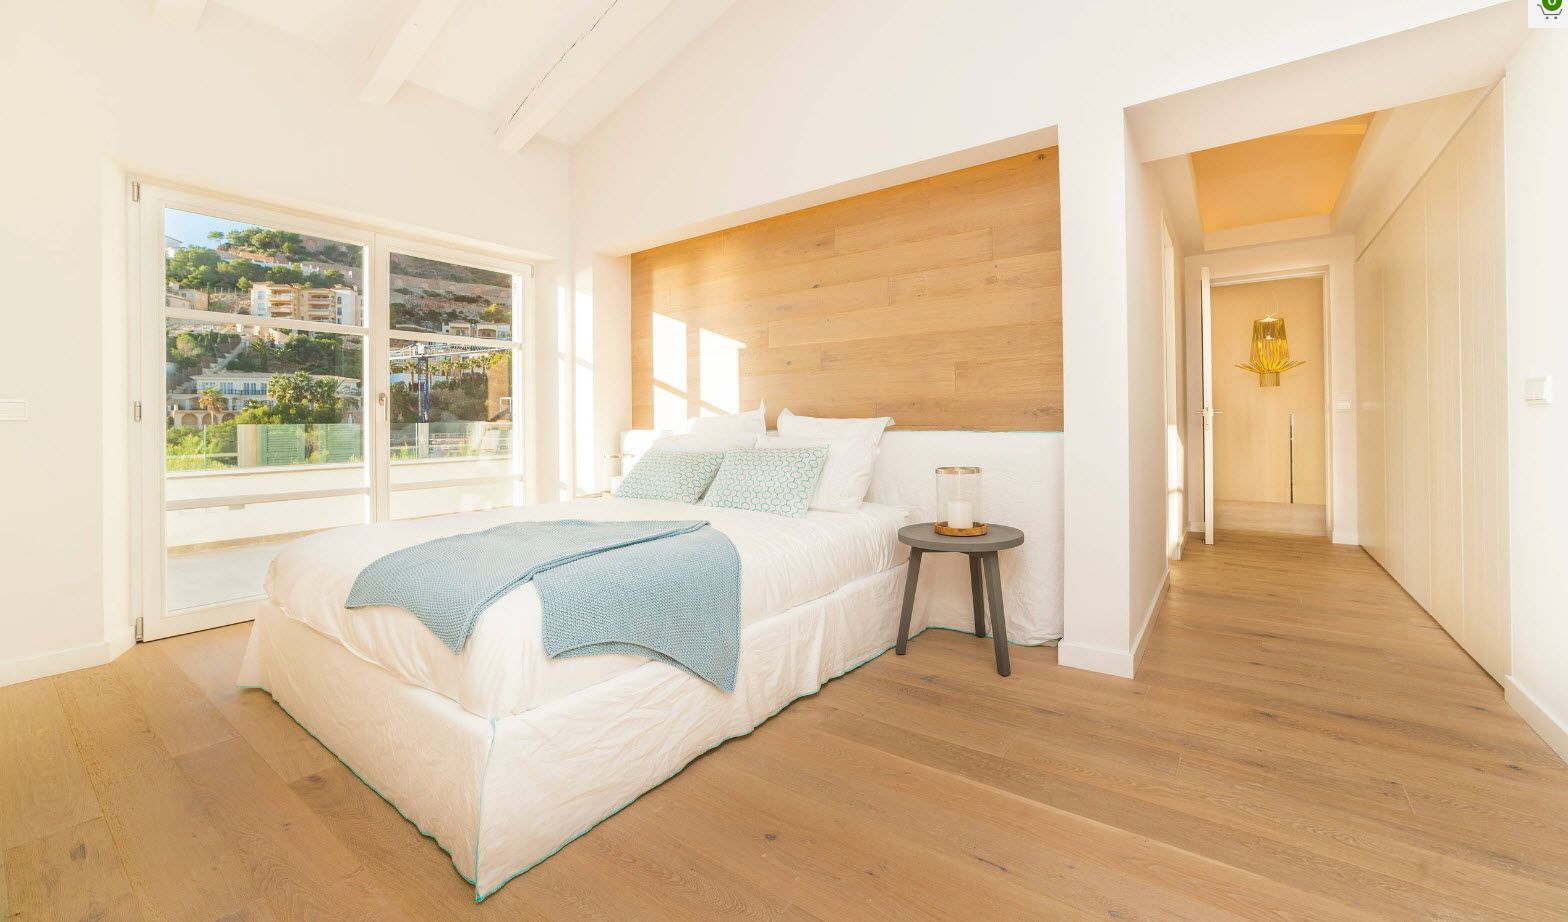 Modern Cottage Interior Design Tips. Trends and Features 2017. Light wooden idyll in the sun lit bedroom